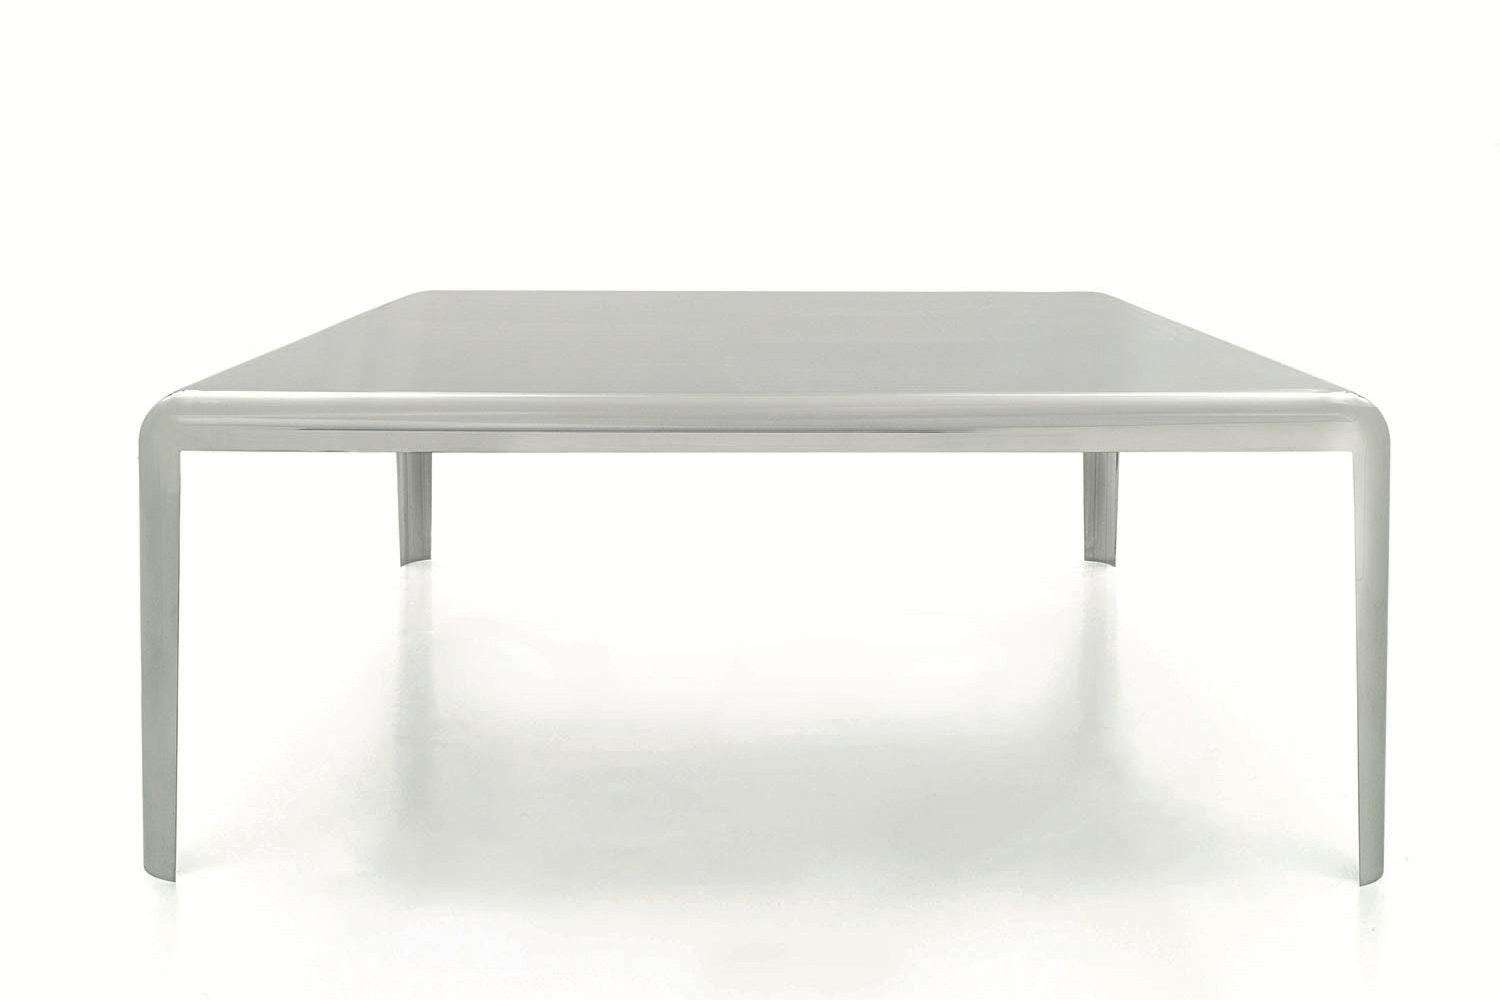 Ferro Table by Piero Lissoni for Porro